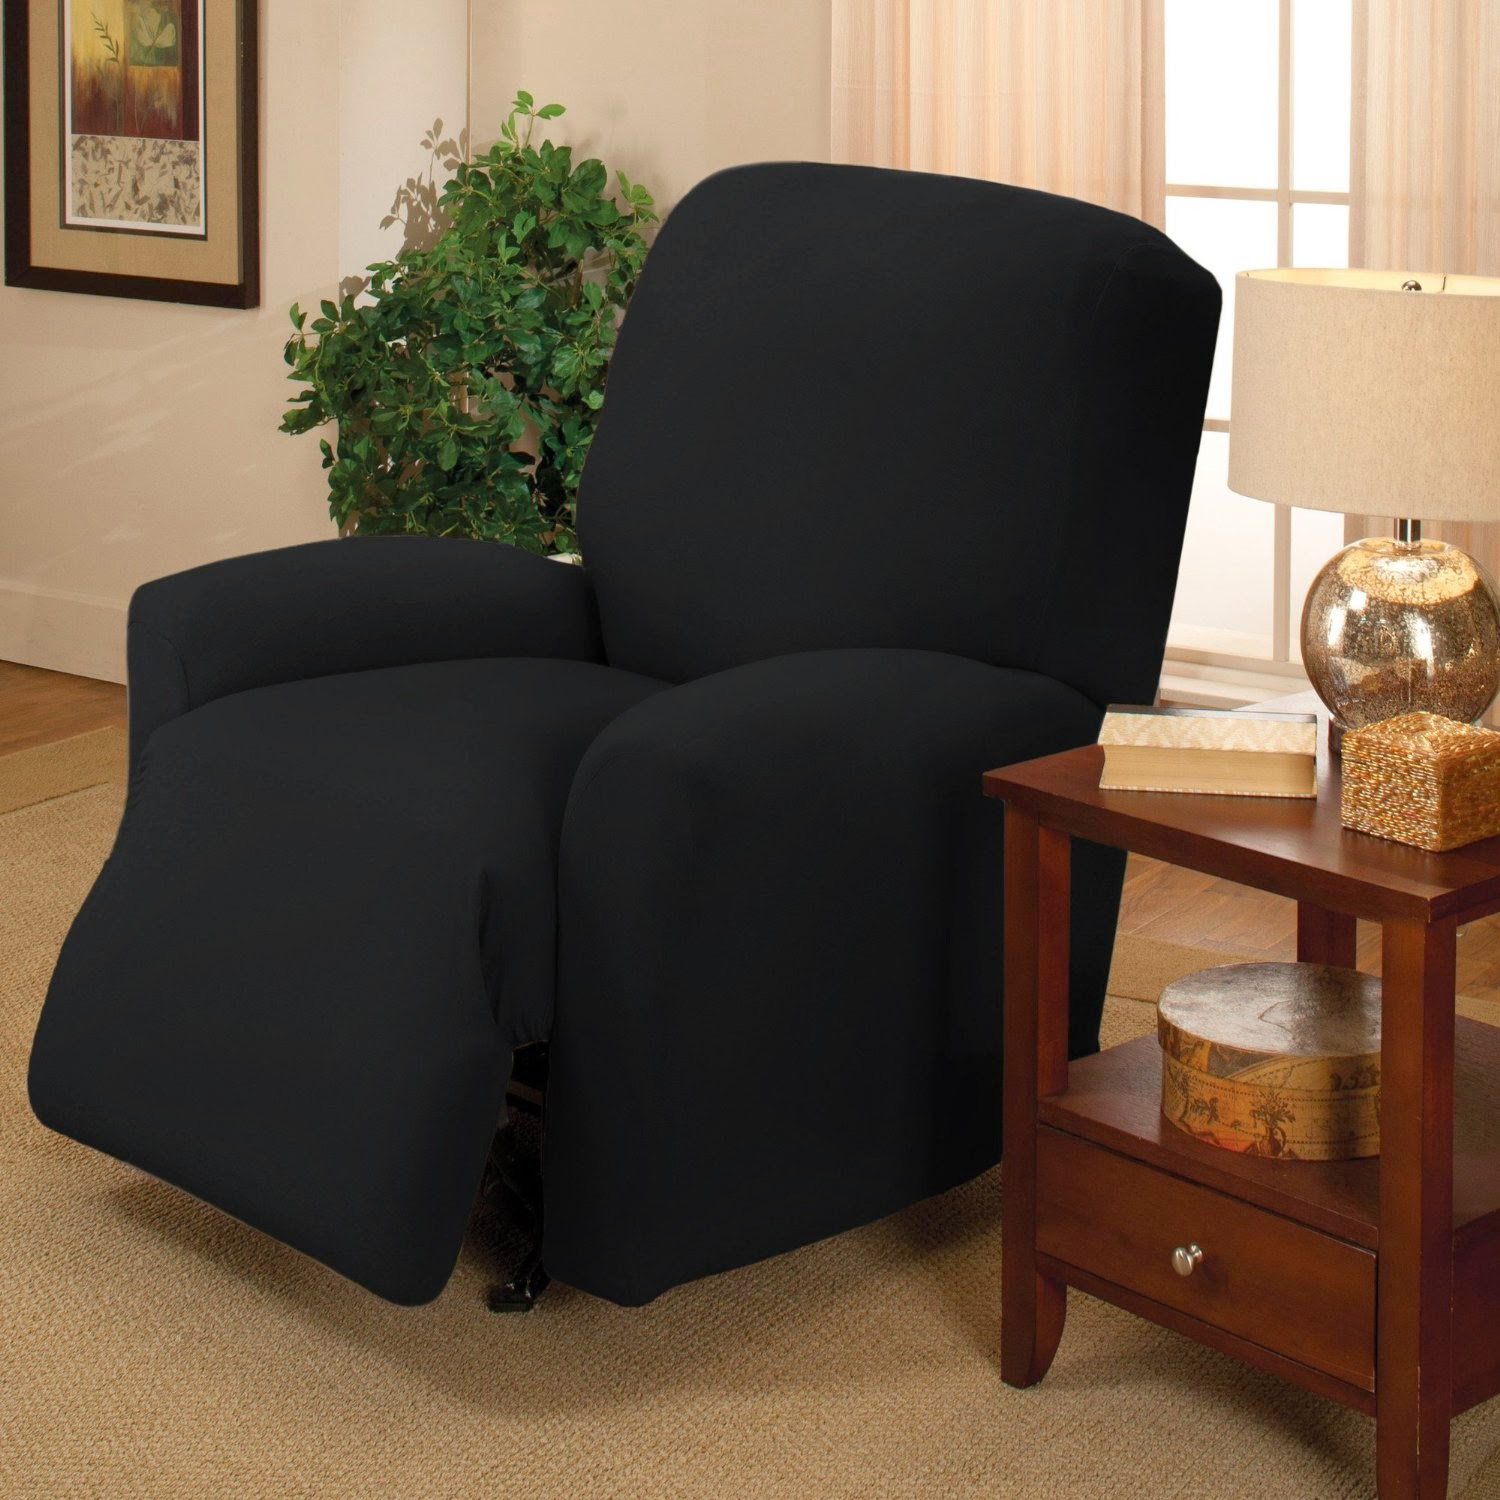 Sofa Recliner Reviews March 2015